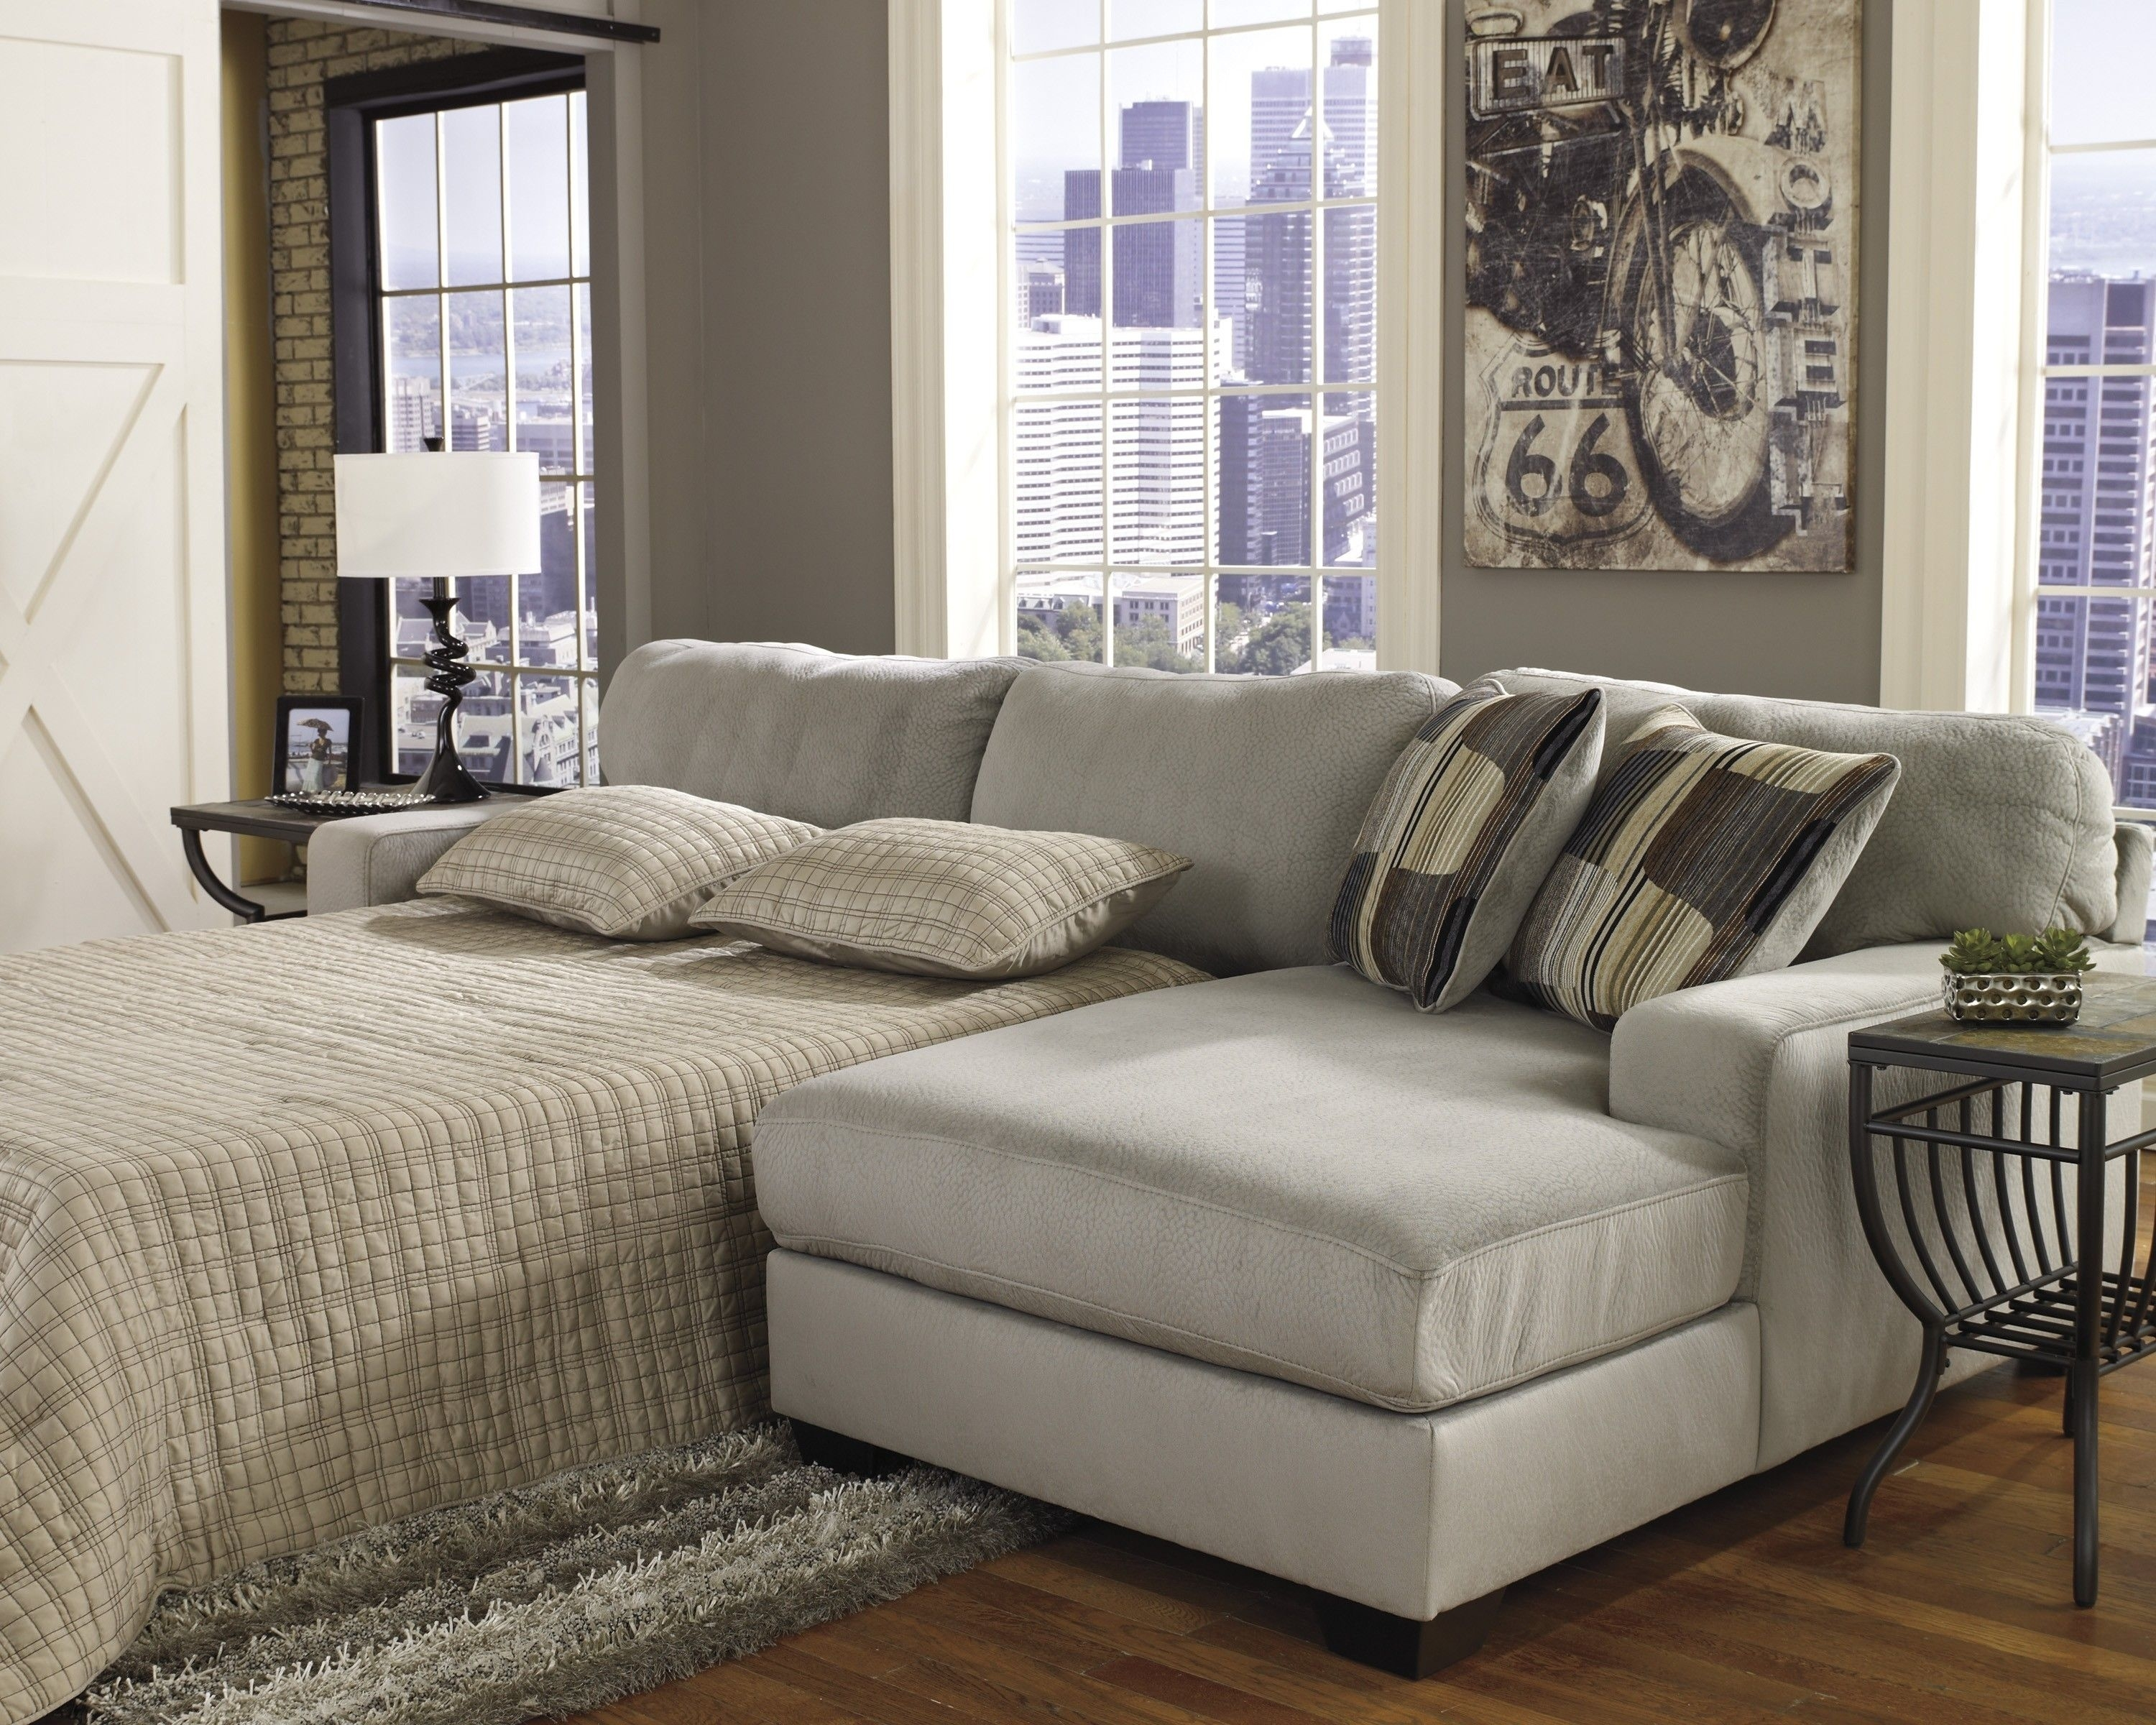 Sectional Sofa With Queen Size Sleeper | Http://tmidb With Sectional Sofas With Queen Size Sleeper (View 2 of 10)